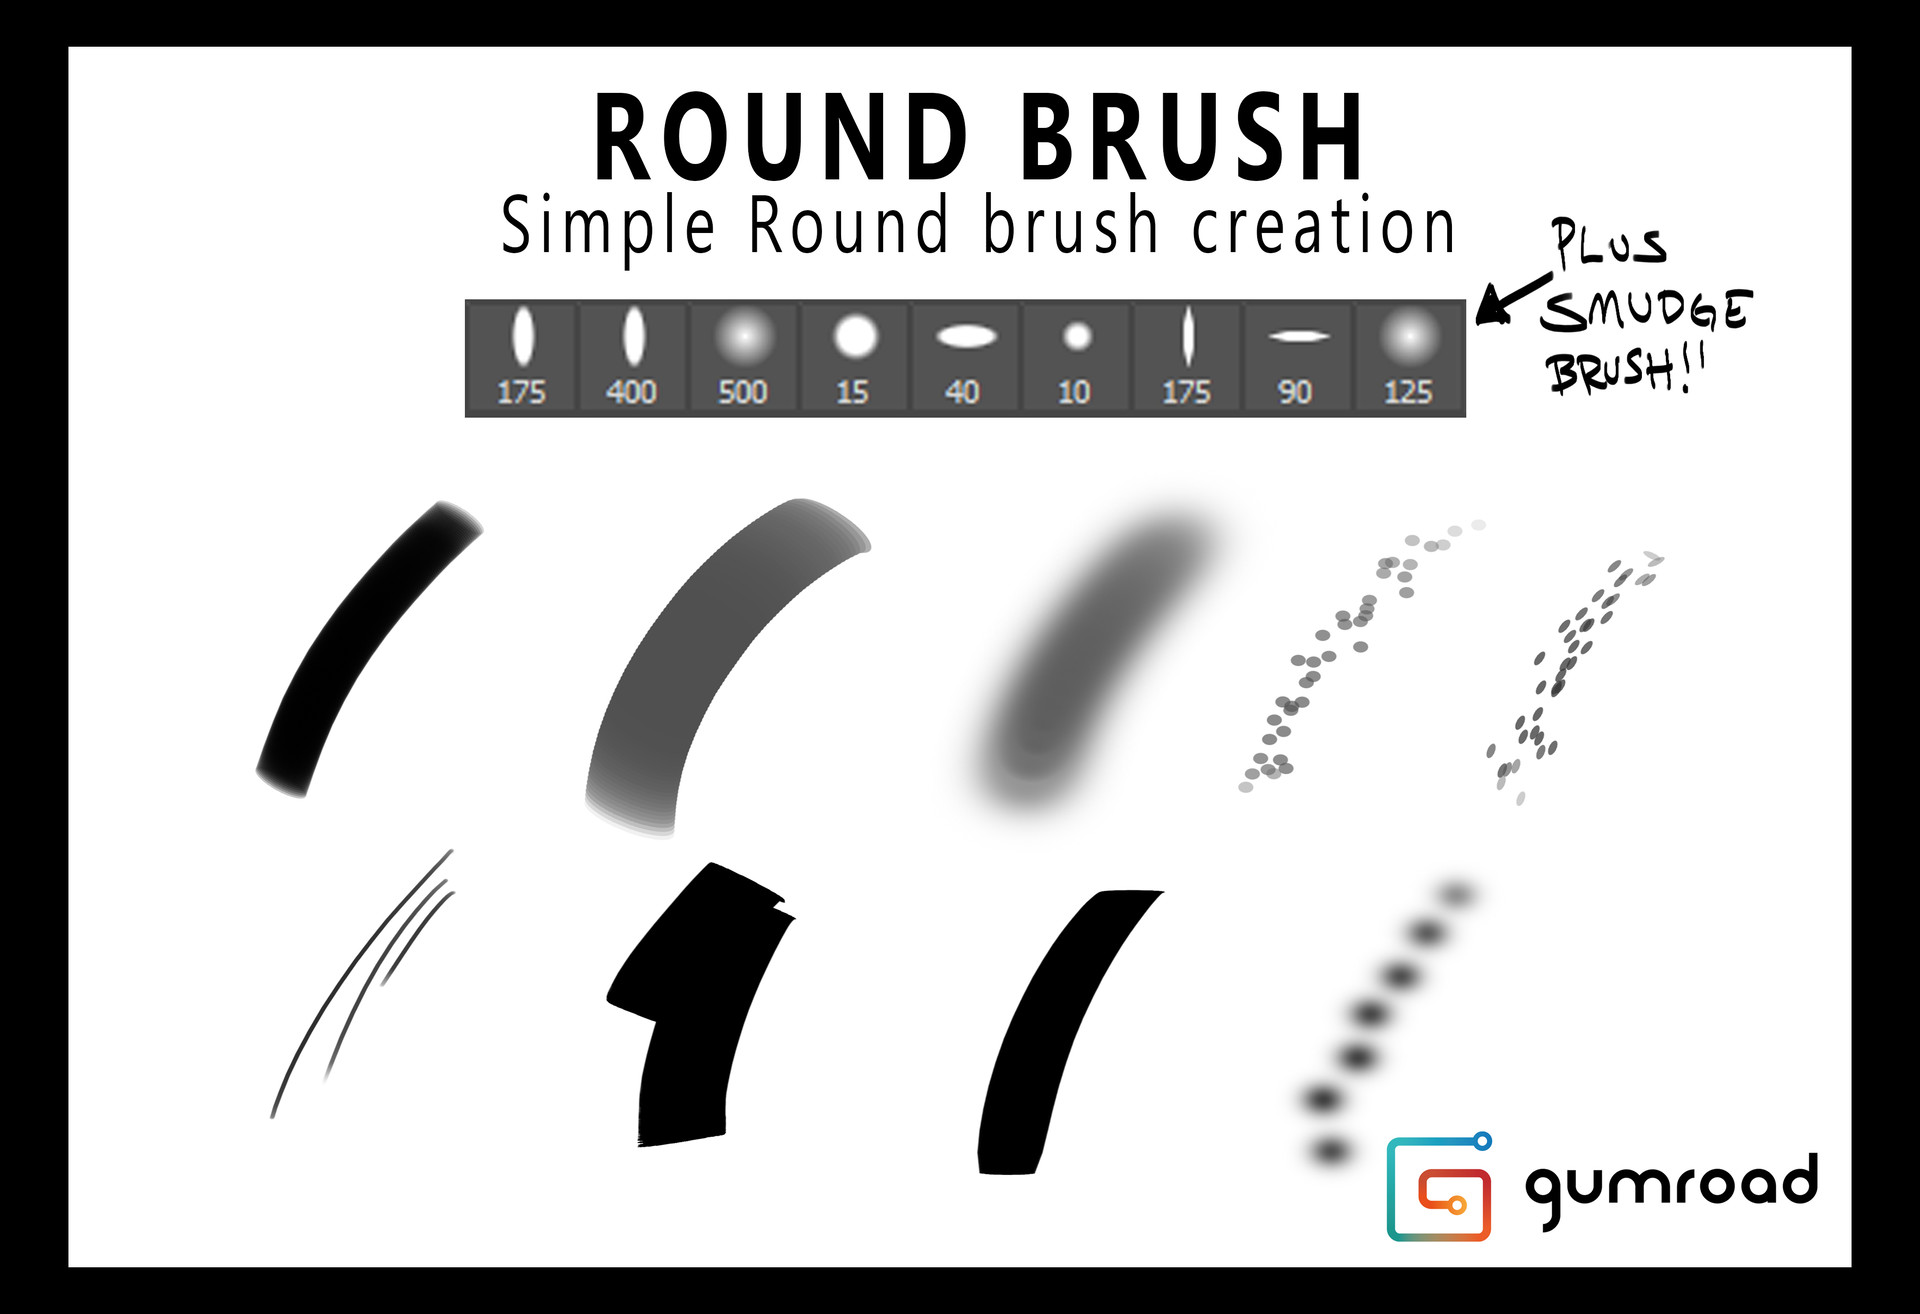 ArtStation - Round Brush Painting + GUMROAD TUT, Jeremy Fenske